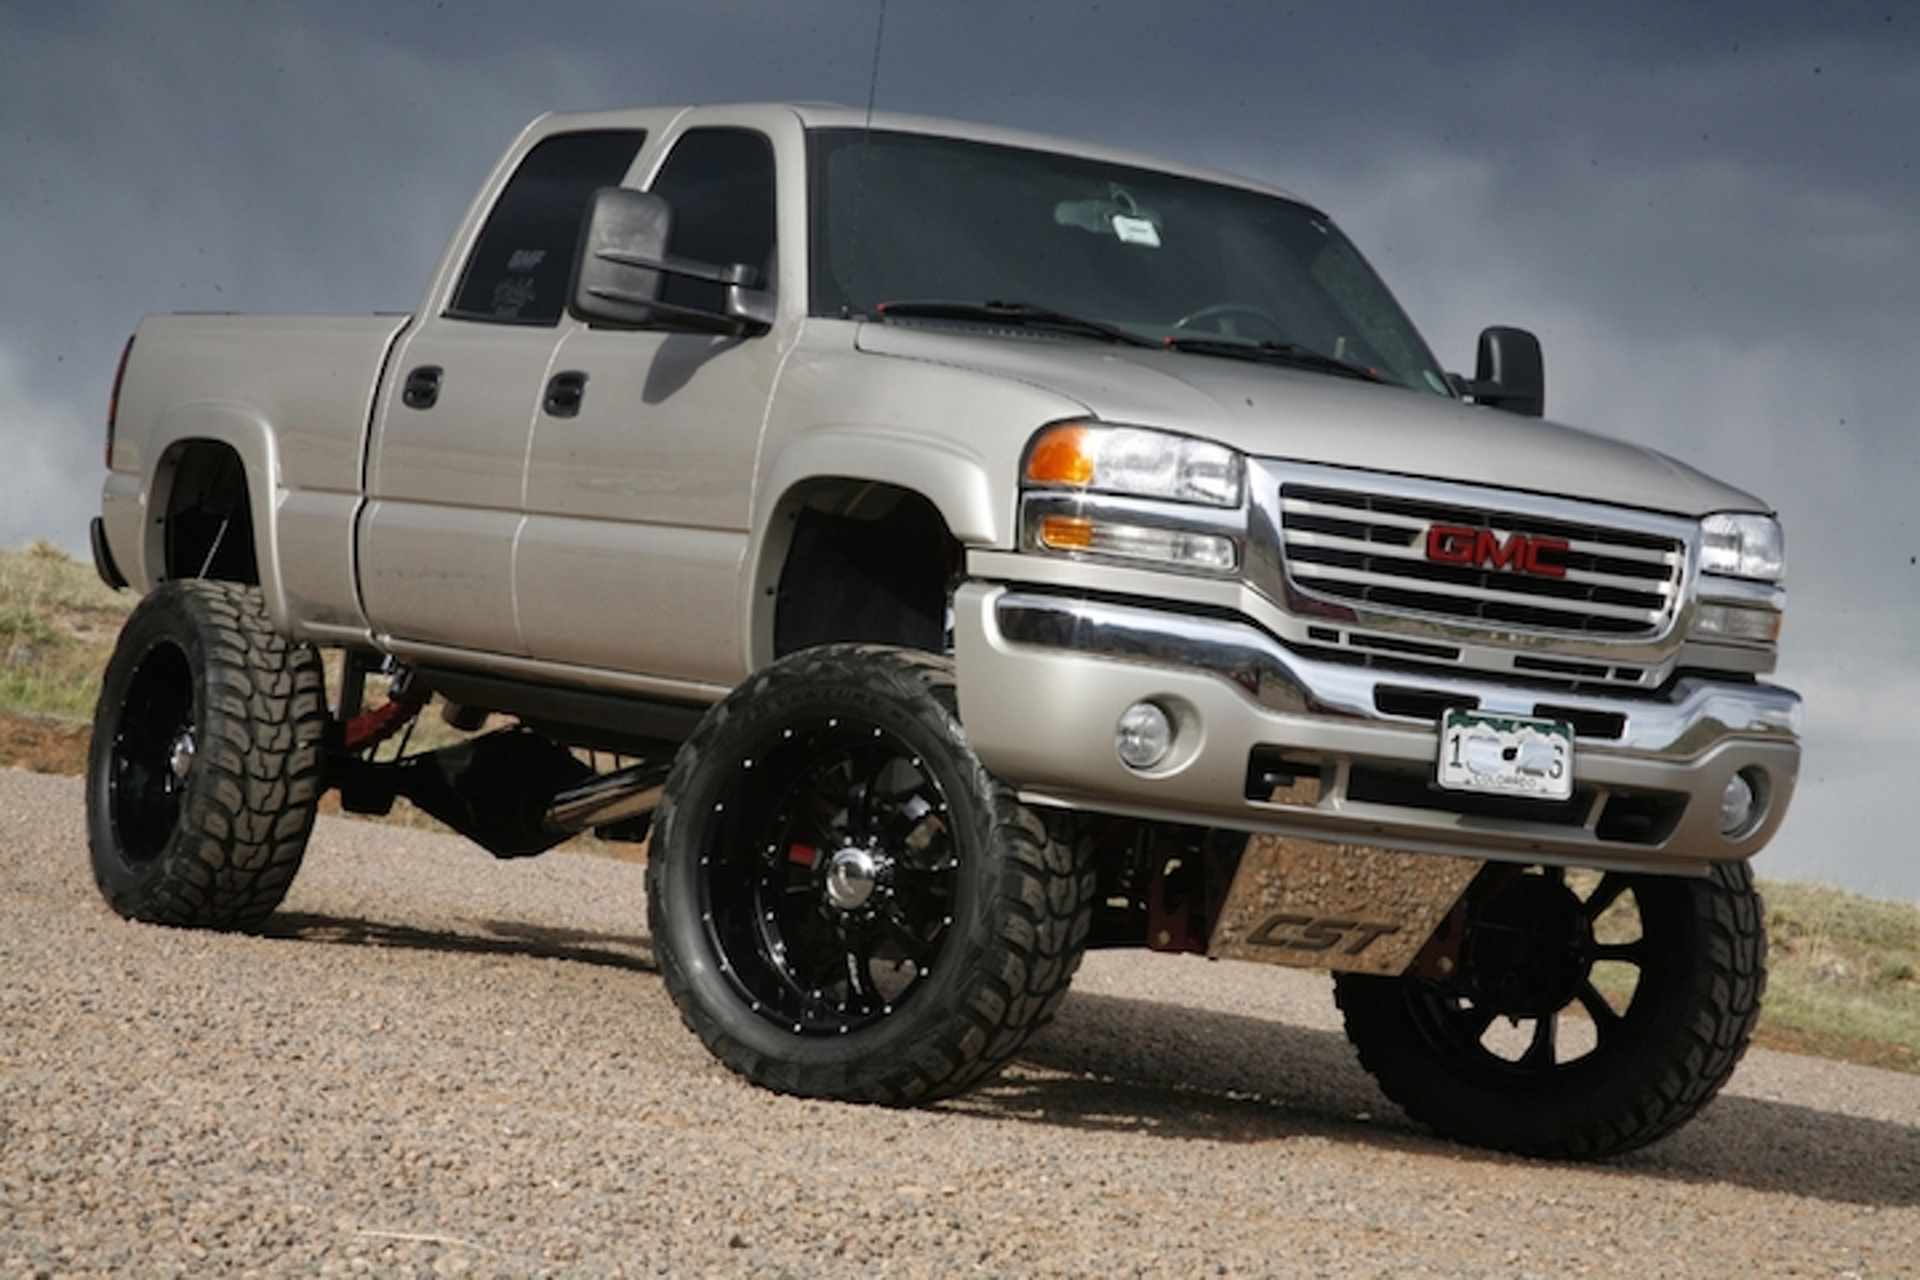 The Ins and Outs of Lifting Your Truck